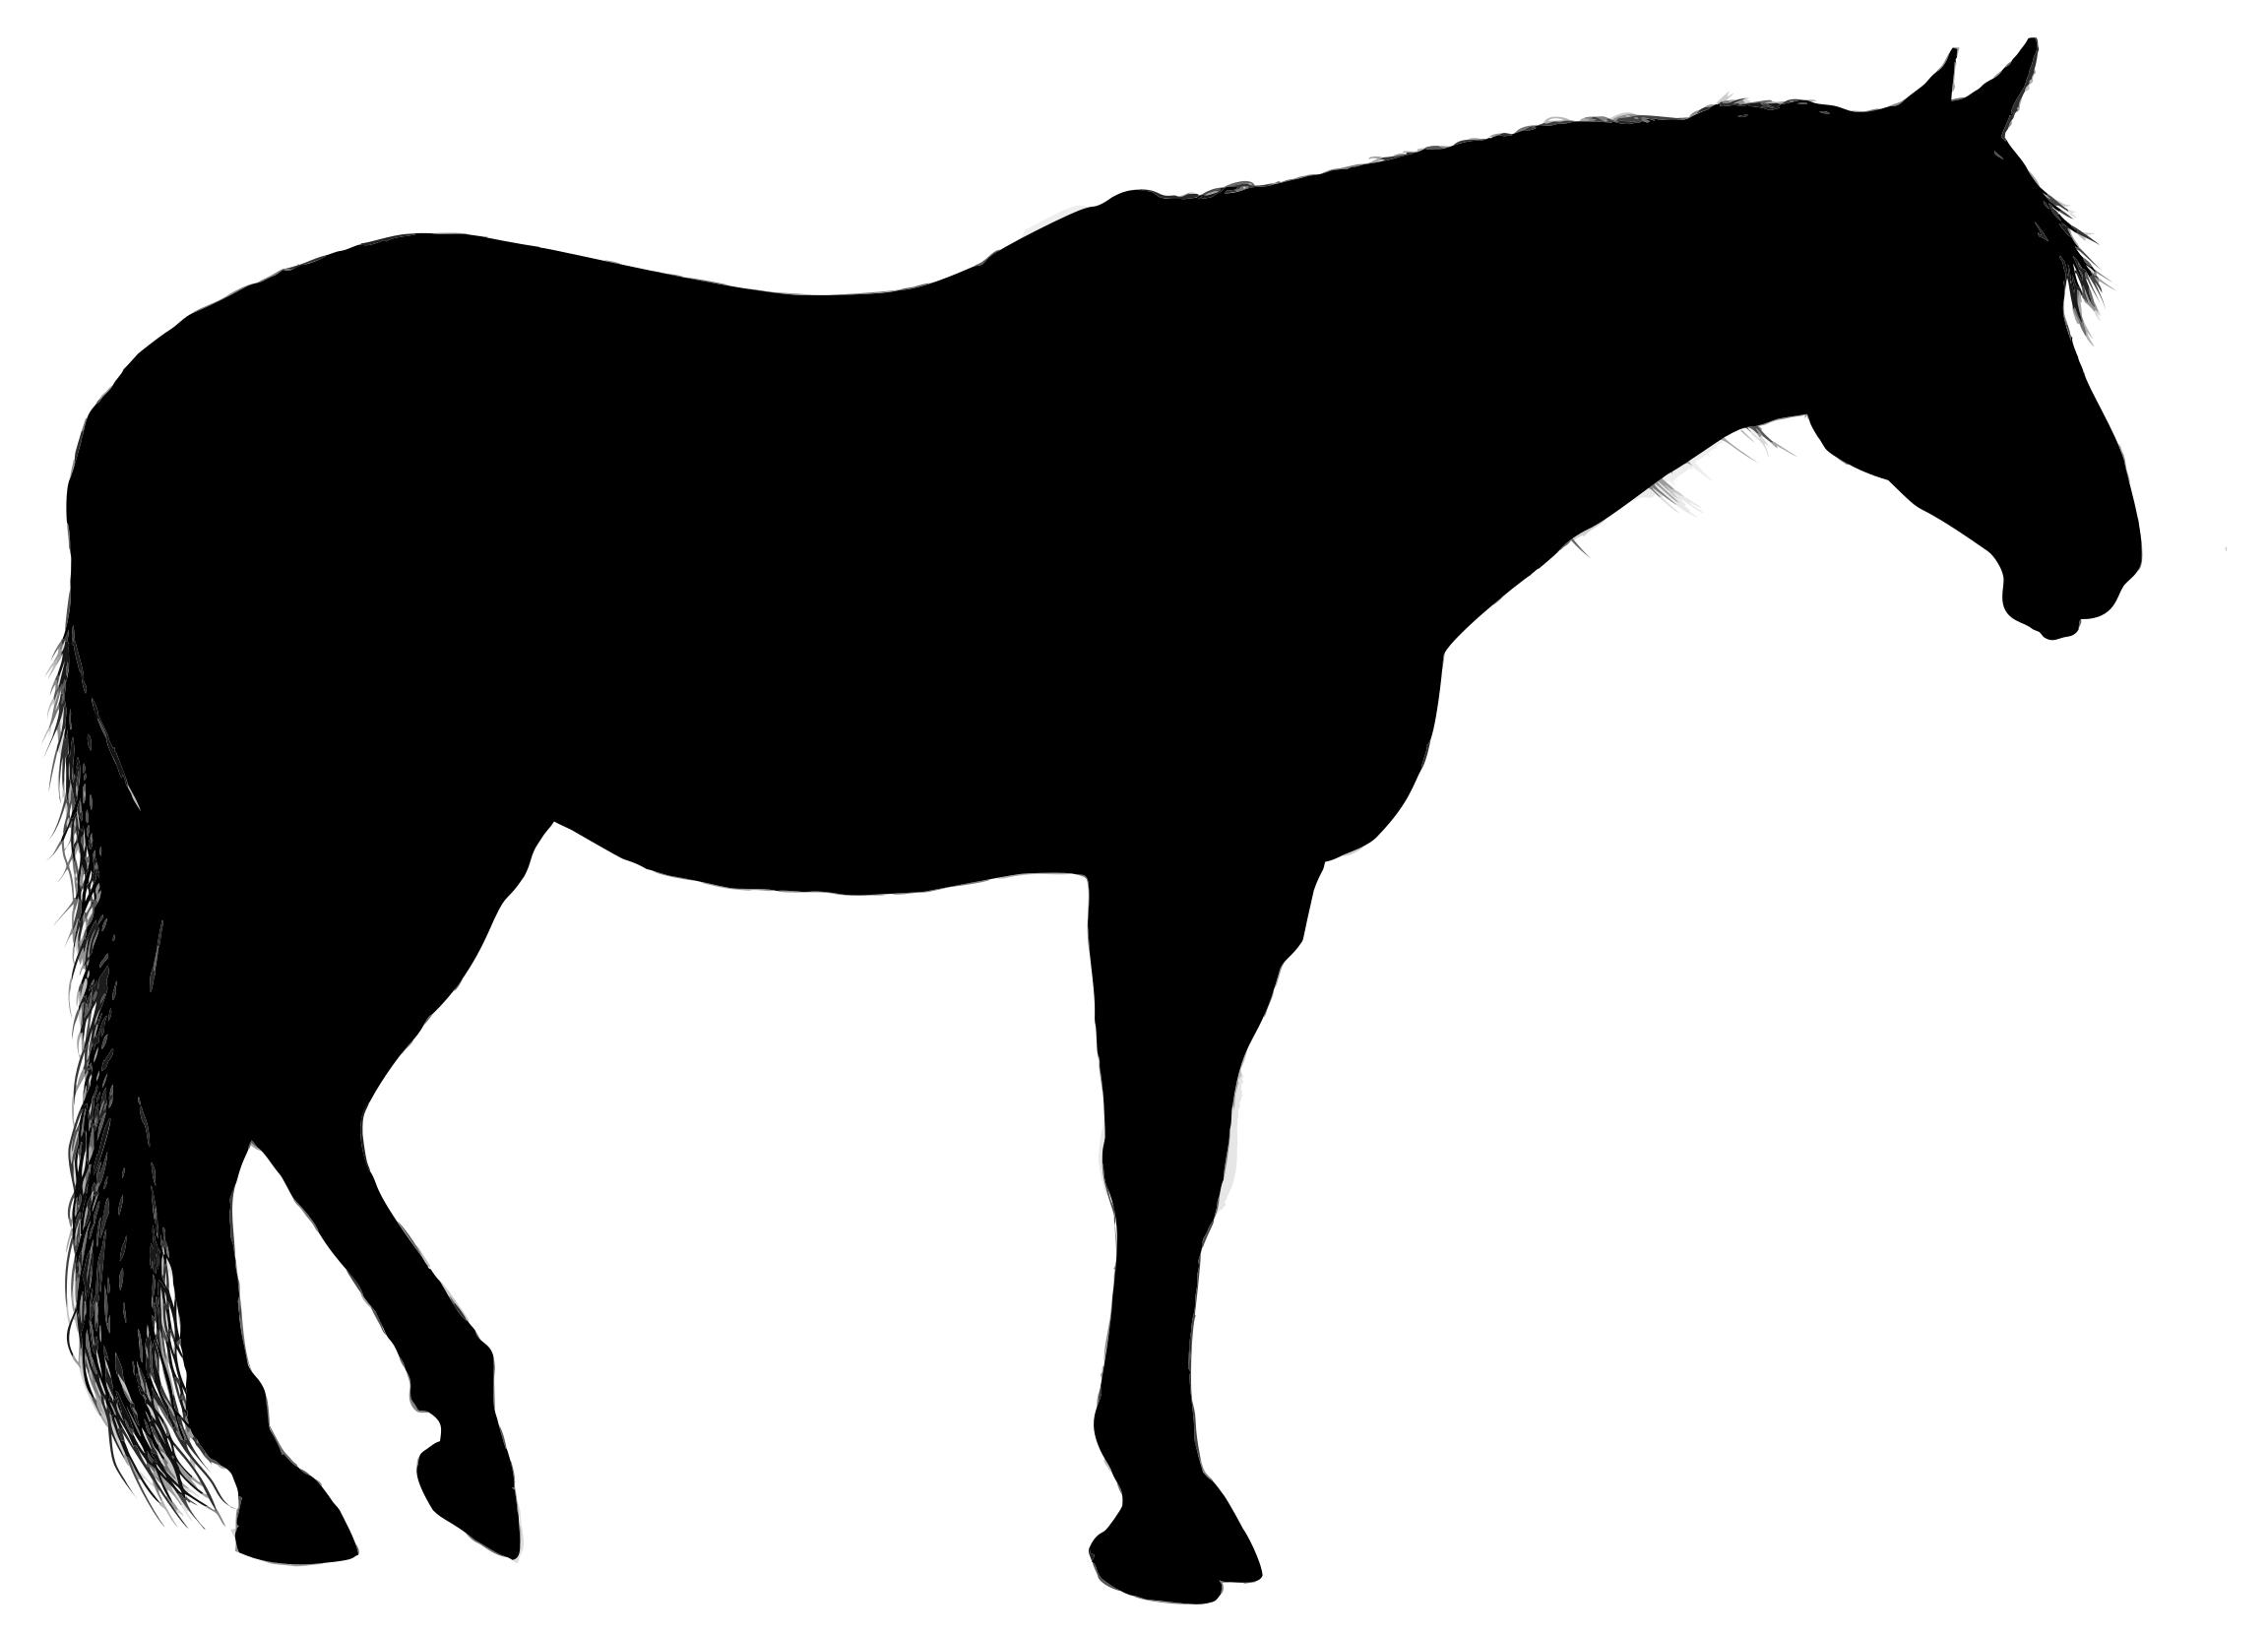 silhouette black horse standing